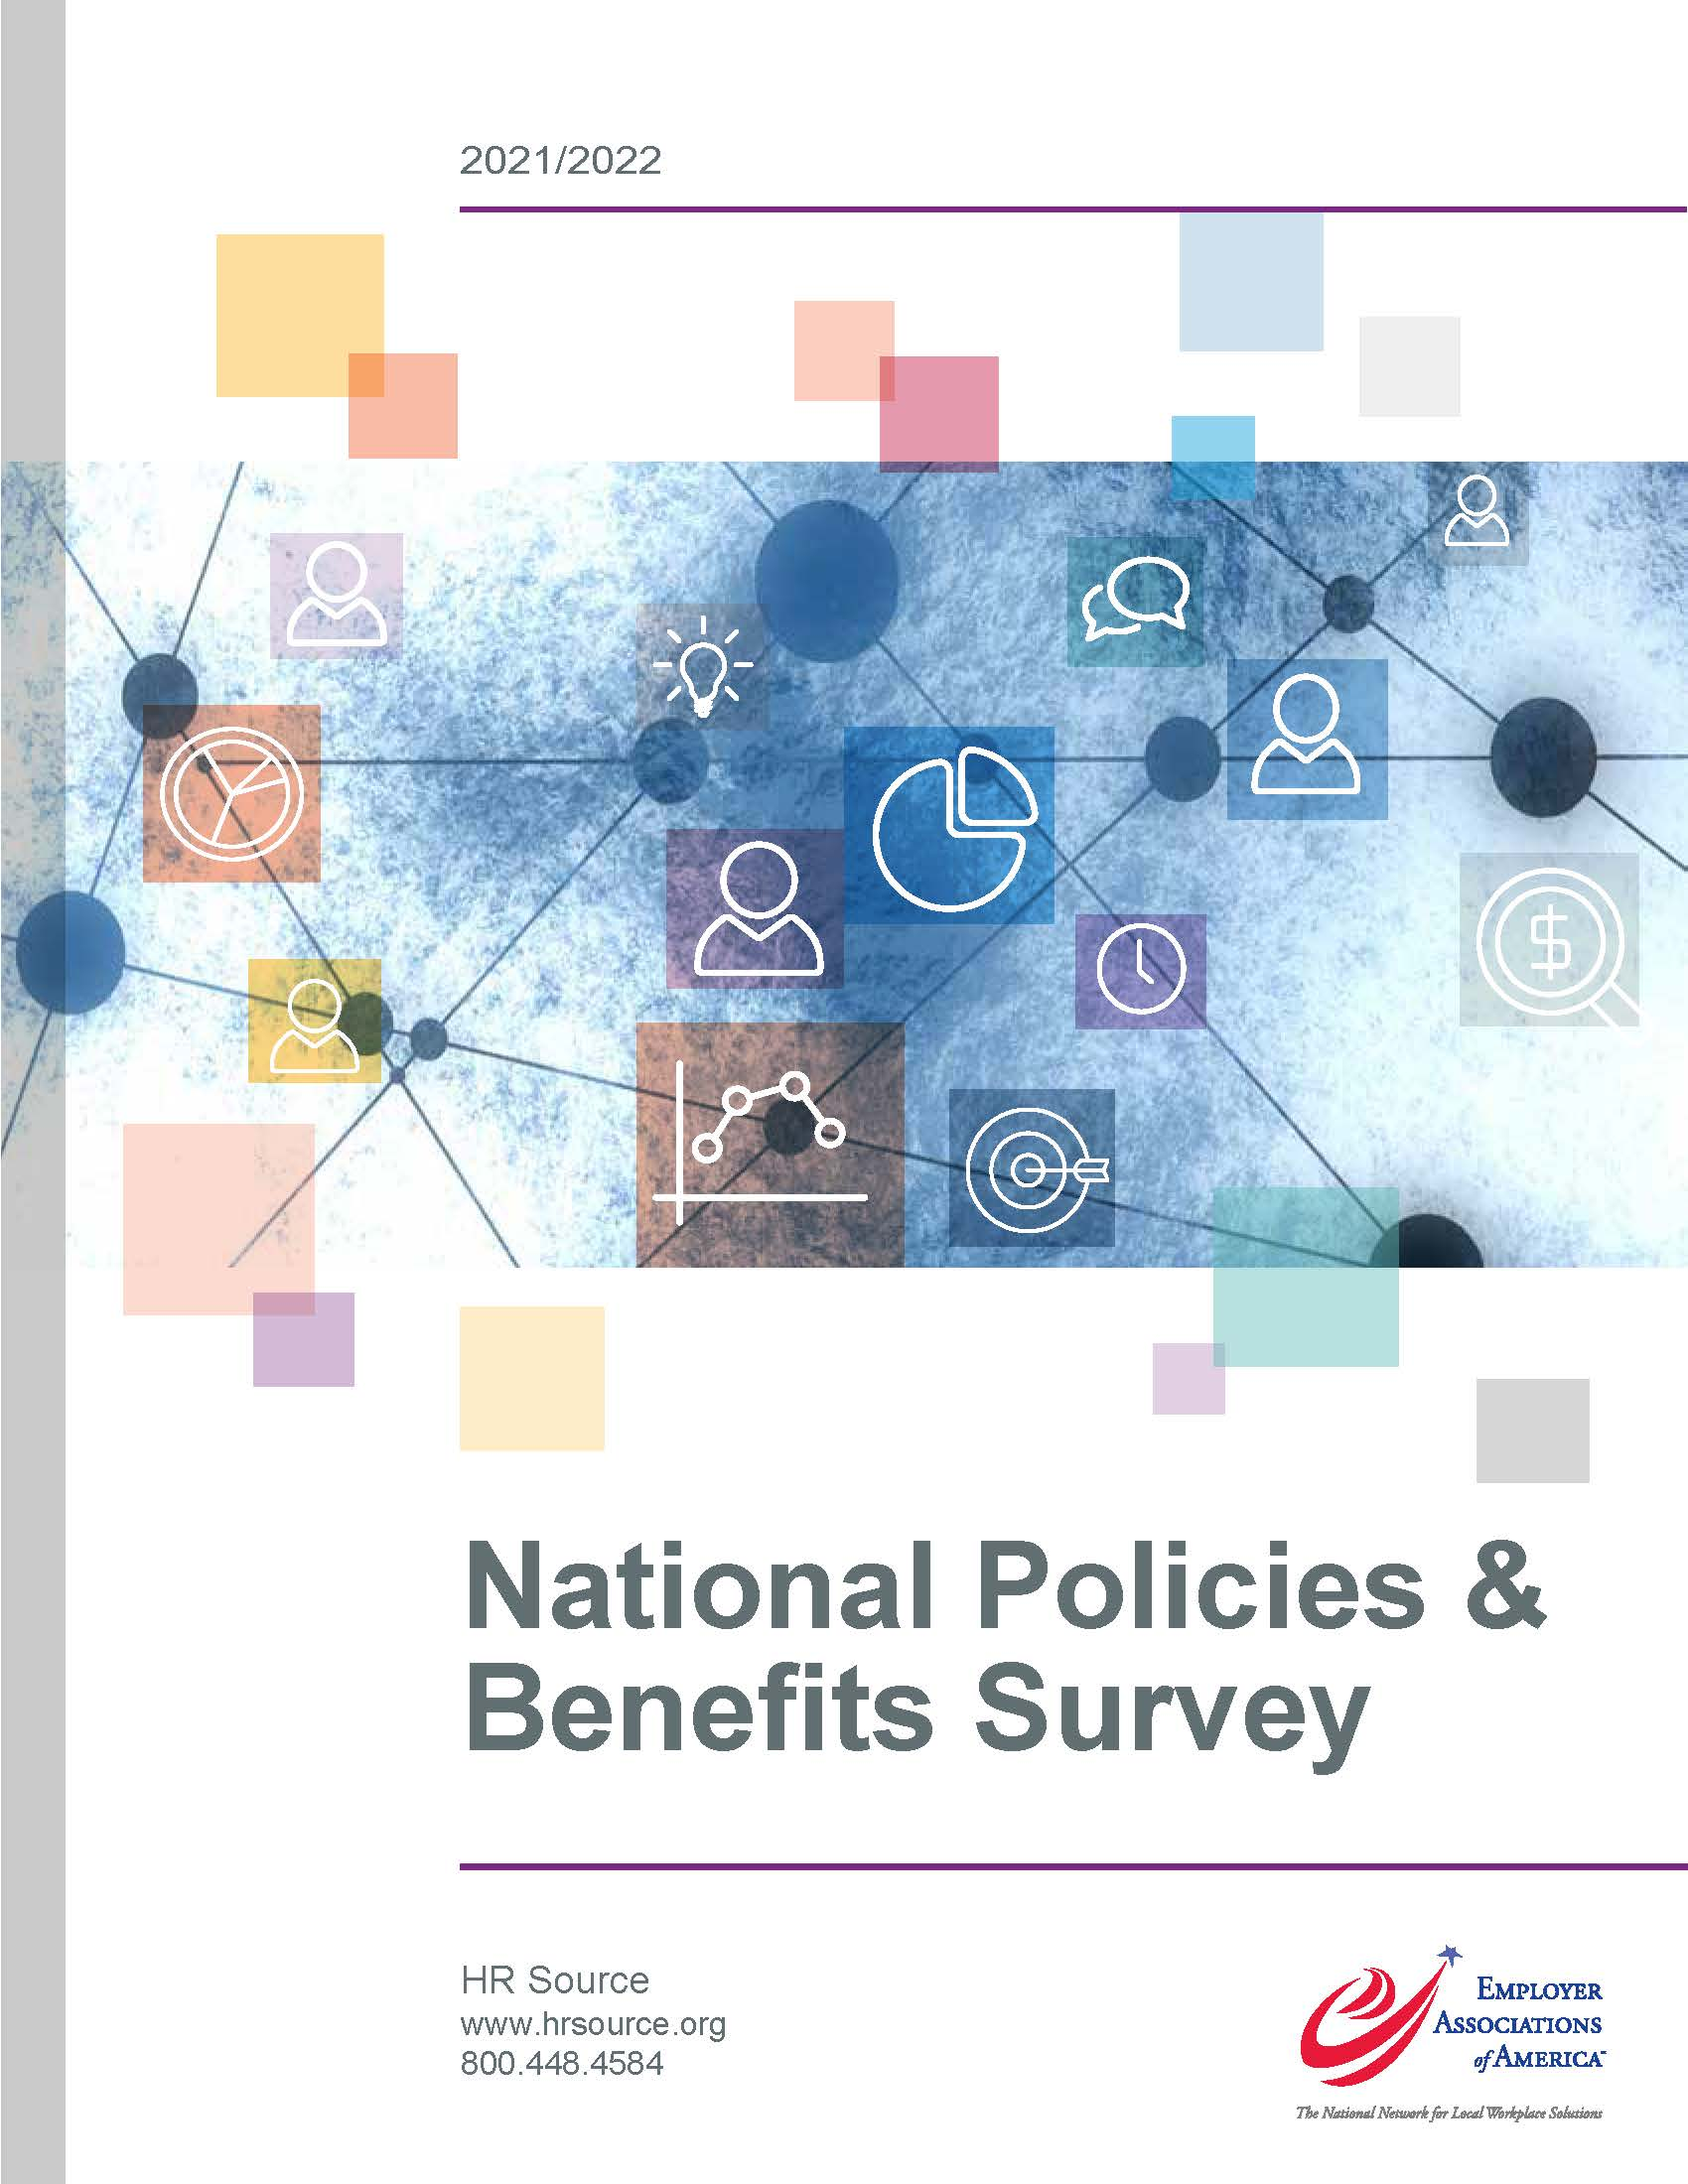 National Policies and Benefits Survey 2021/2022